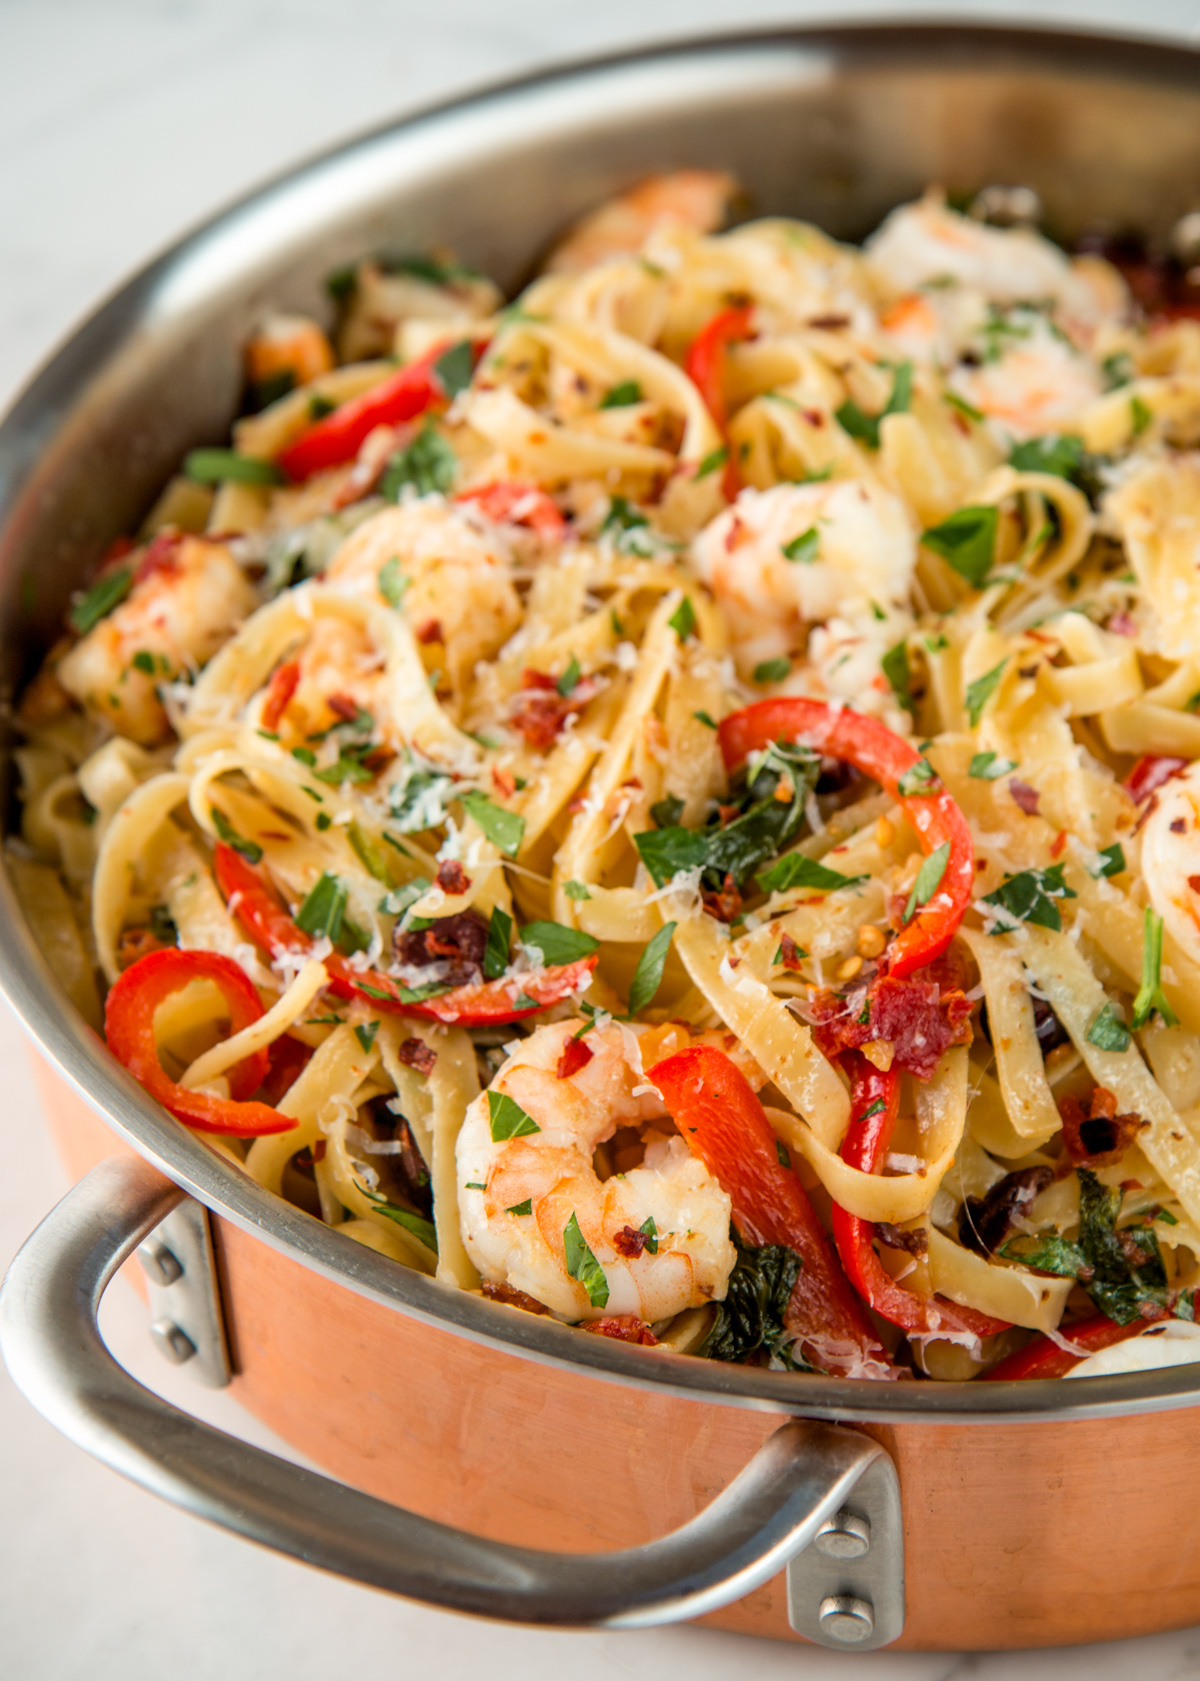 Shrimp Fettuccine with Garlic and Sundried Tomatoes